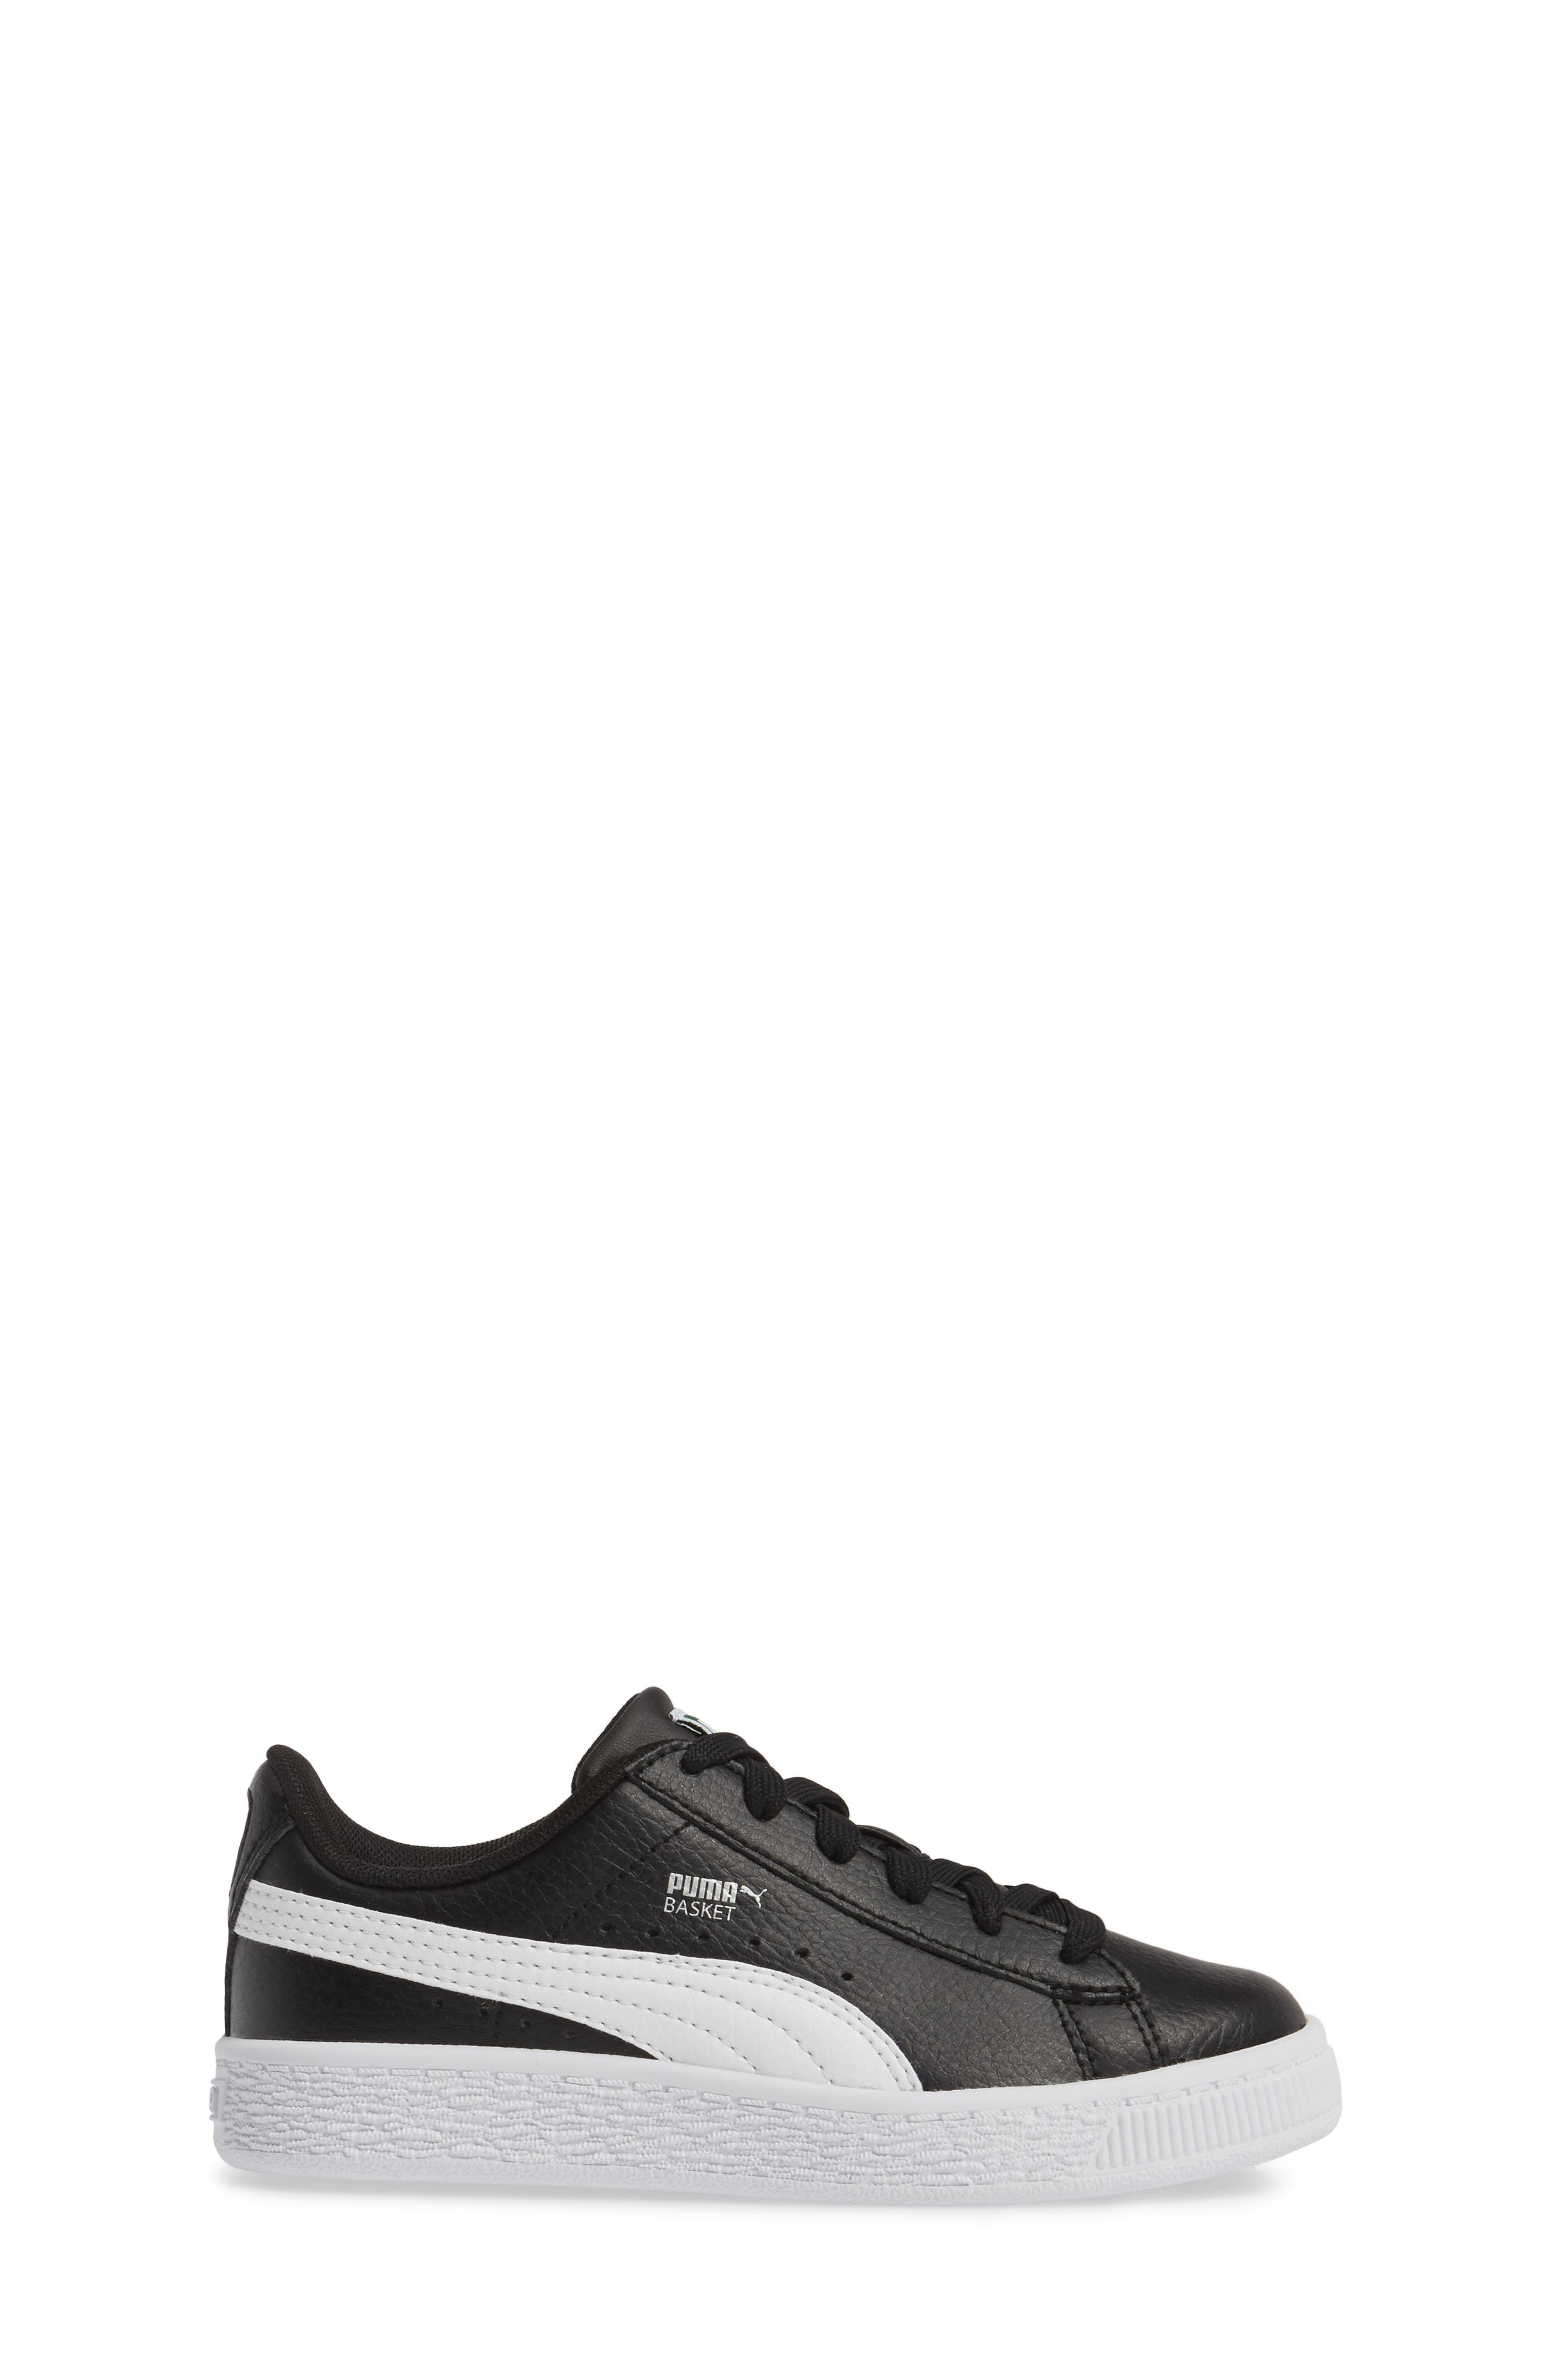 Basket Classic PS Sneaker,                             Alternate thumbnail 3, color,                             001